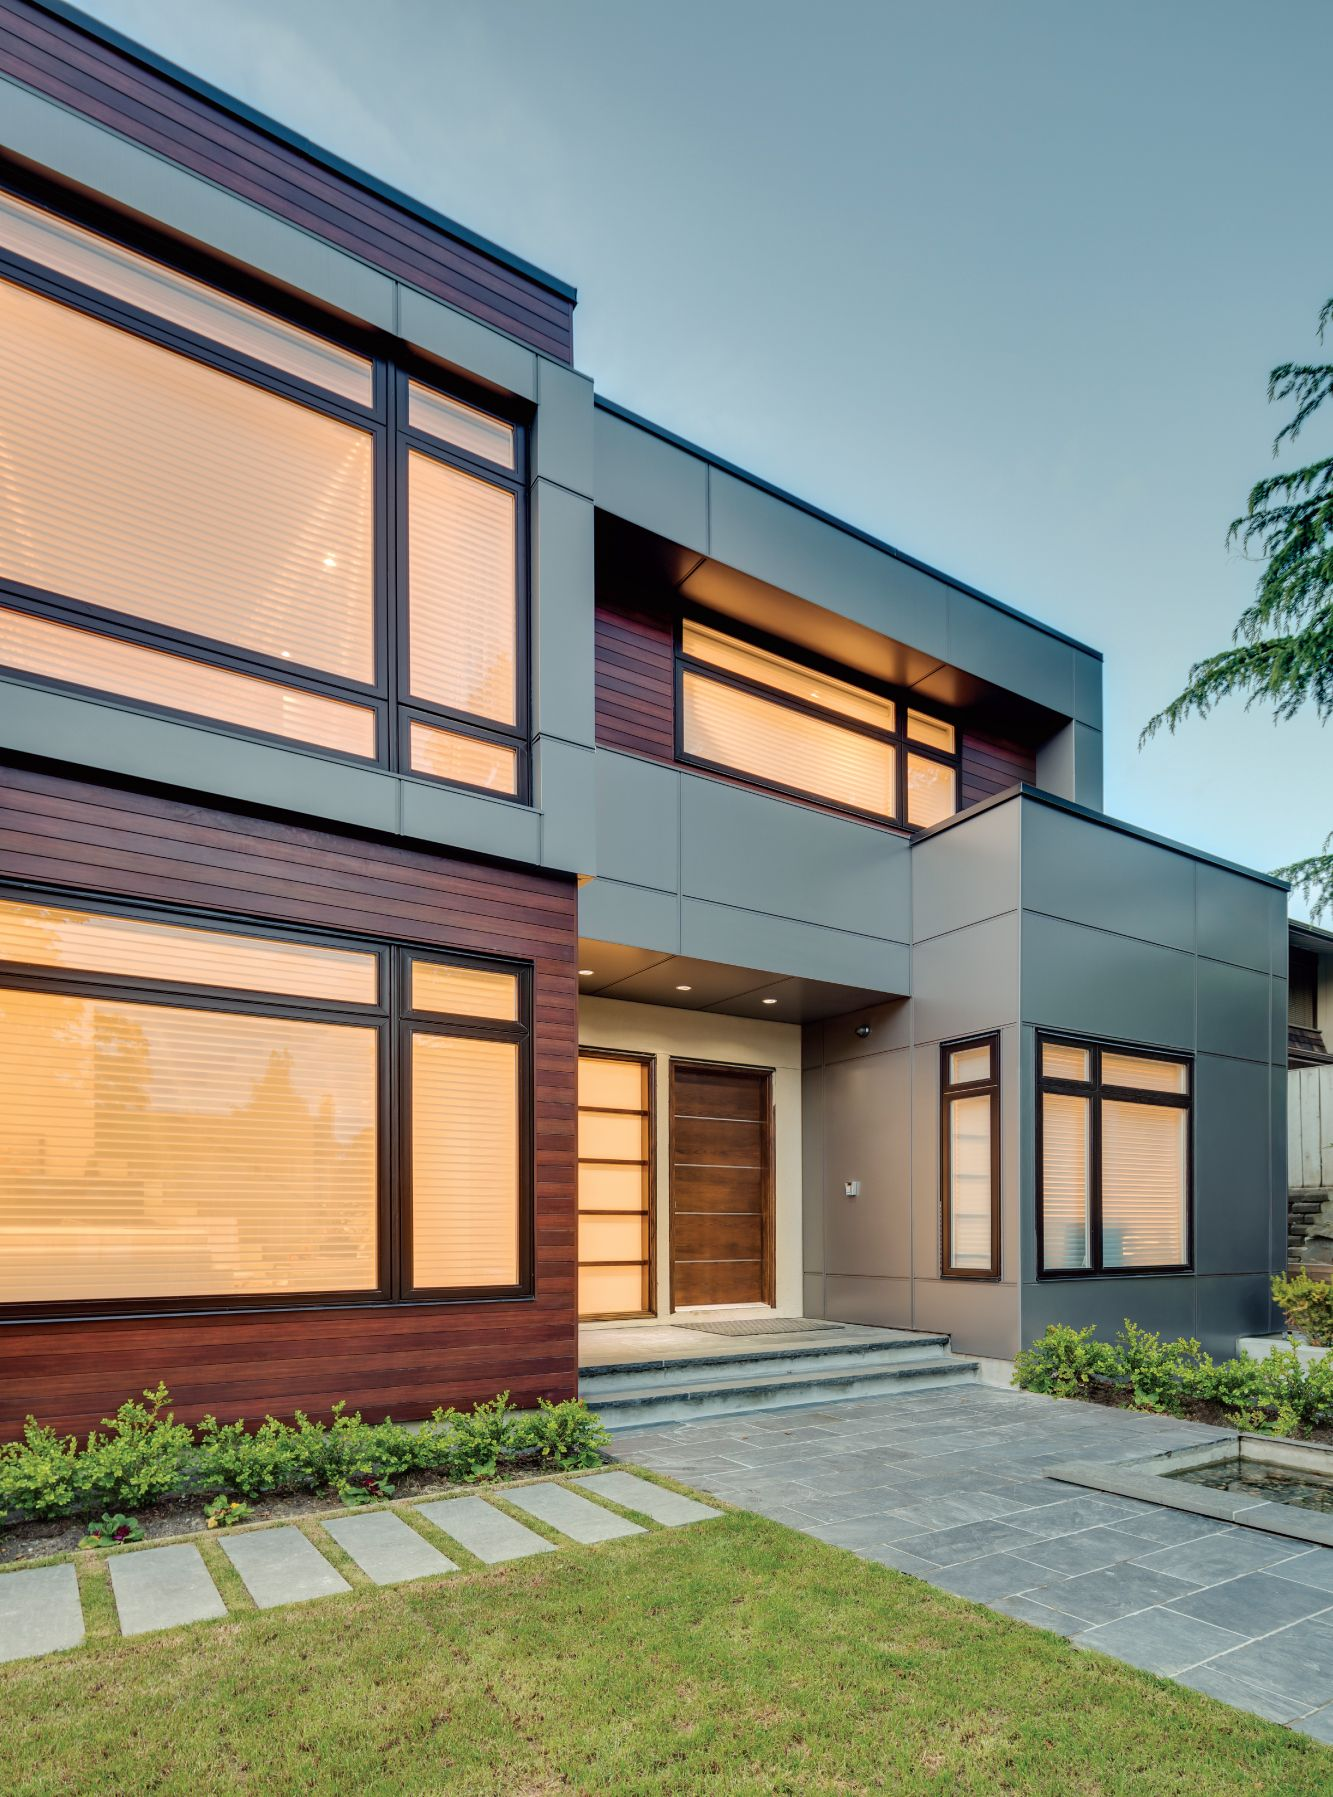 al13 architectural panel system aluminum architectural on modern house designs siding that look amazing id=58348